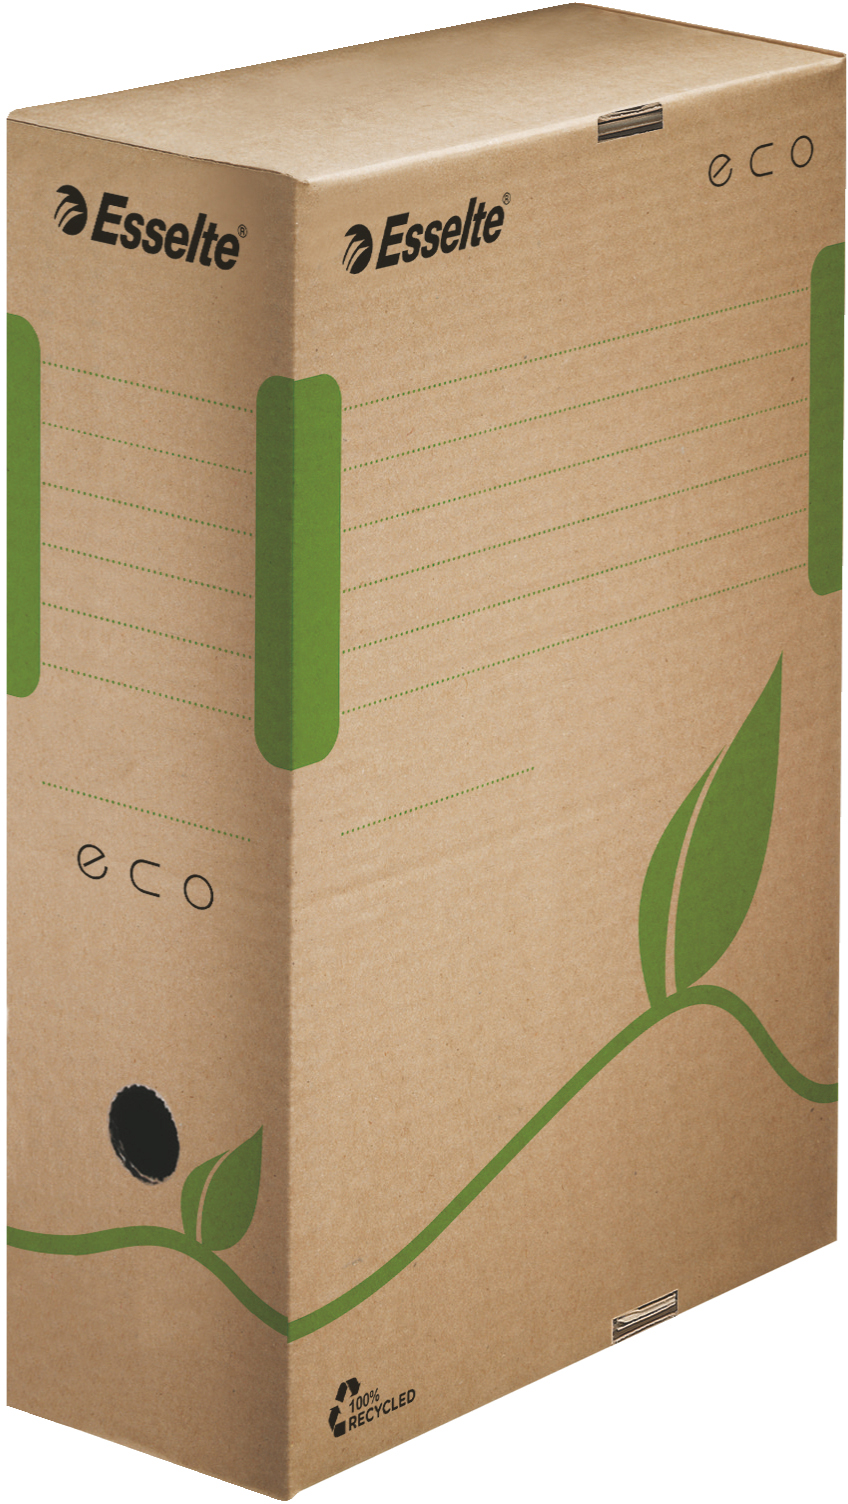 Esselte Archivbox 'ECO' 100 mm in braun